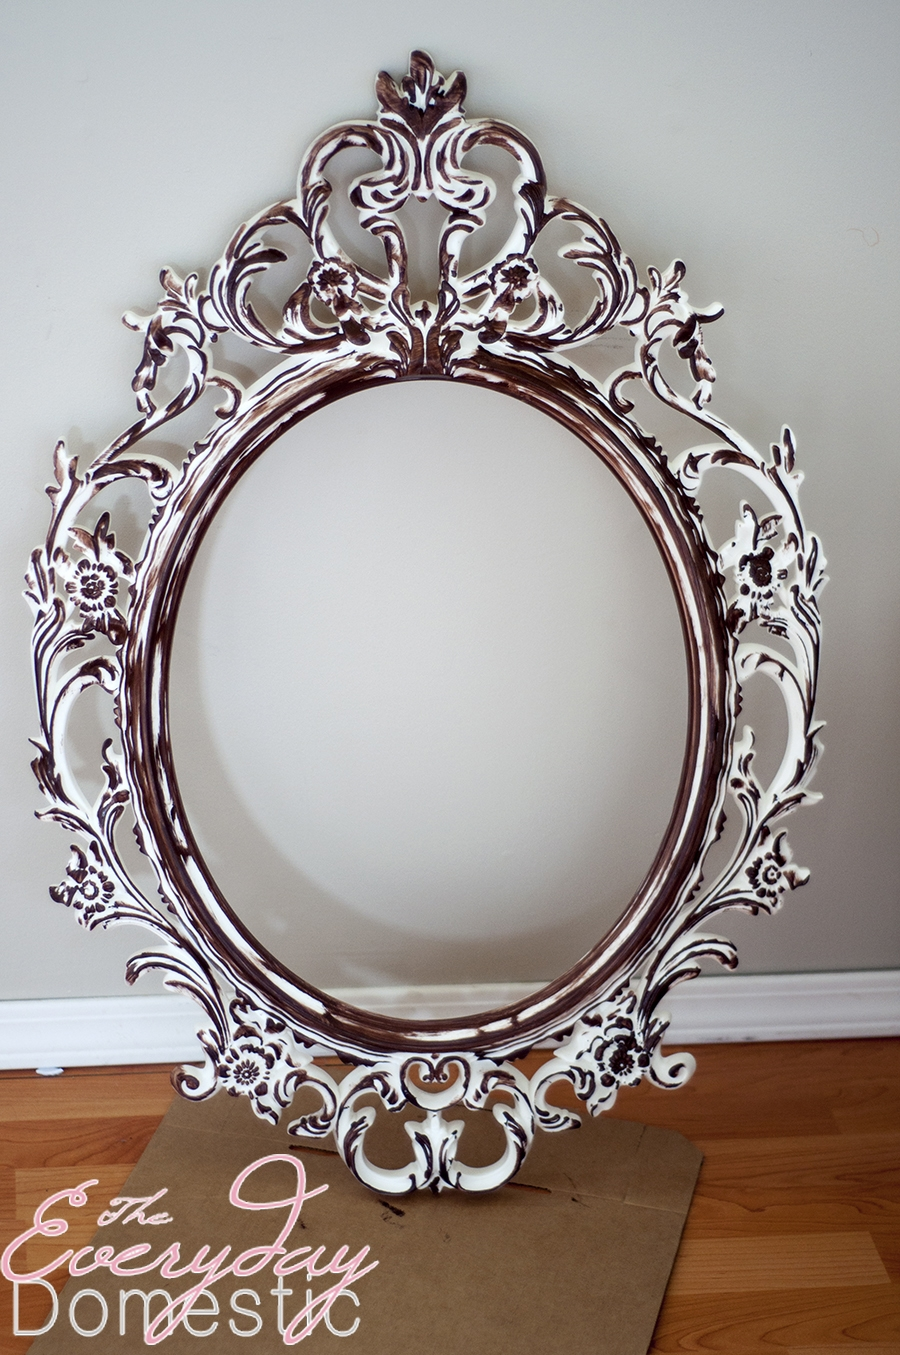 Accessories Fair Picture Of Vintage Chic Ornate Silver Metallic Throughout Small Ornate Mirrors (View 9 of 15)